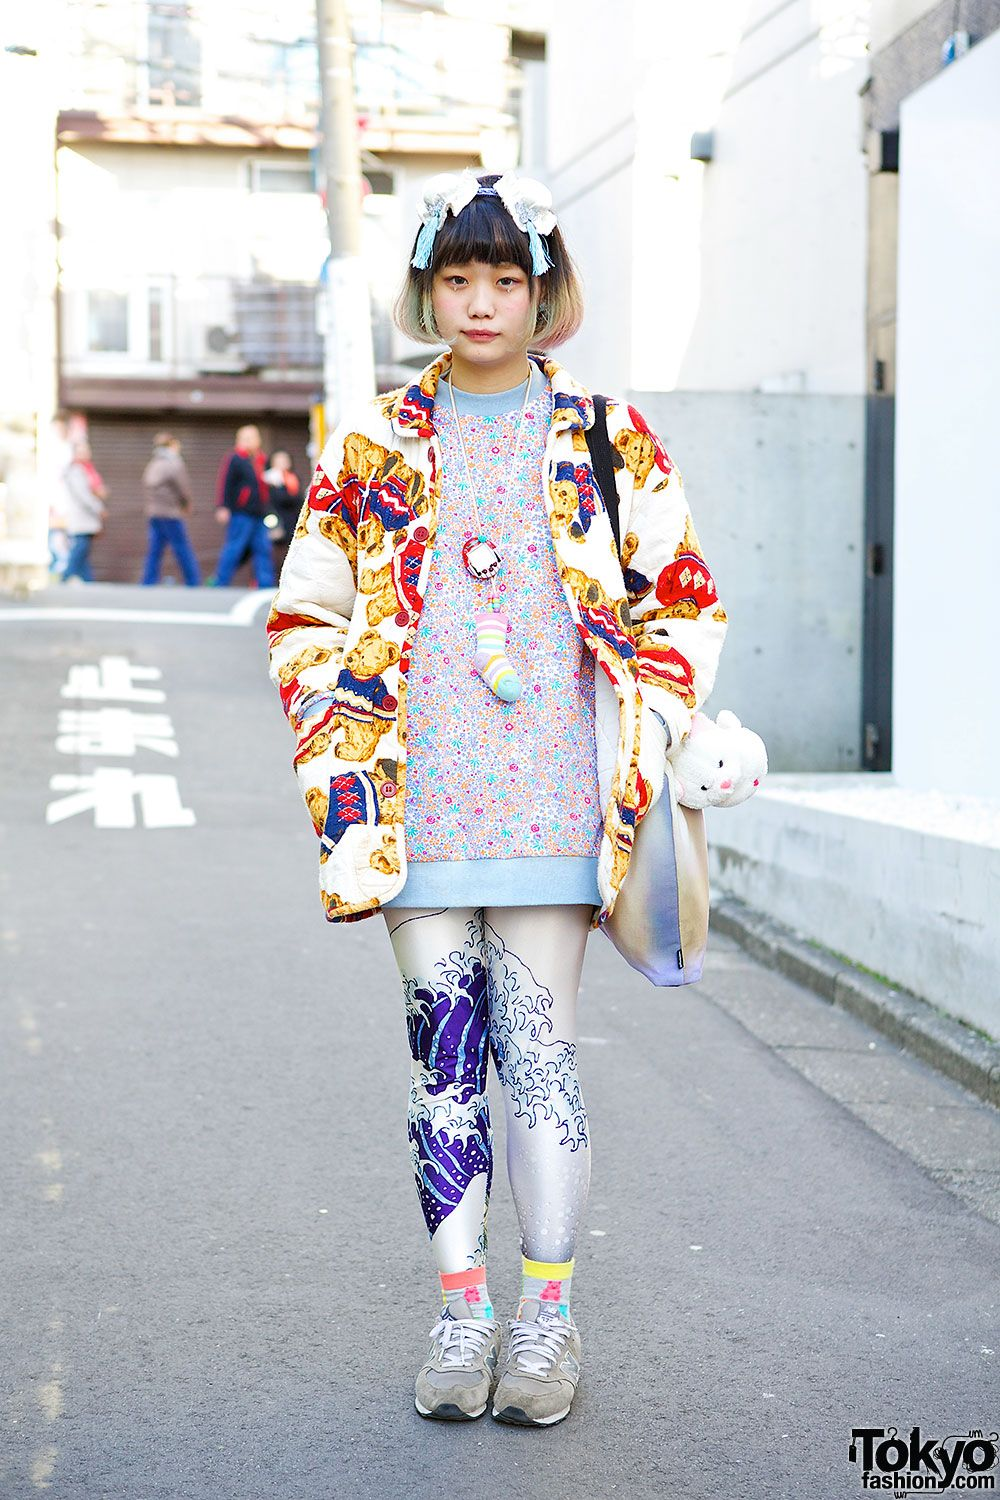 Elleanor, 19 years old, works at resale shop Kinji Harajuku & at Scramble Market in LaForet. she also does a fun/cute video series for Tokyo Fashion. watch here: https://www.youtube.com/watch?v=iLYV0MwihUk&list=PLWInlmFraFbGbEAi3pS7m_cxmwnZ_AKYg | 4 May 2014 | #Fashion #Harajuku (原宿) #Shibuya (渋谷) #Tokyo (東京) #Japan (日本)